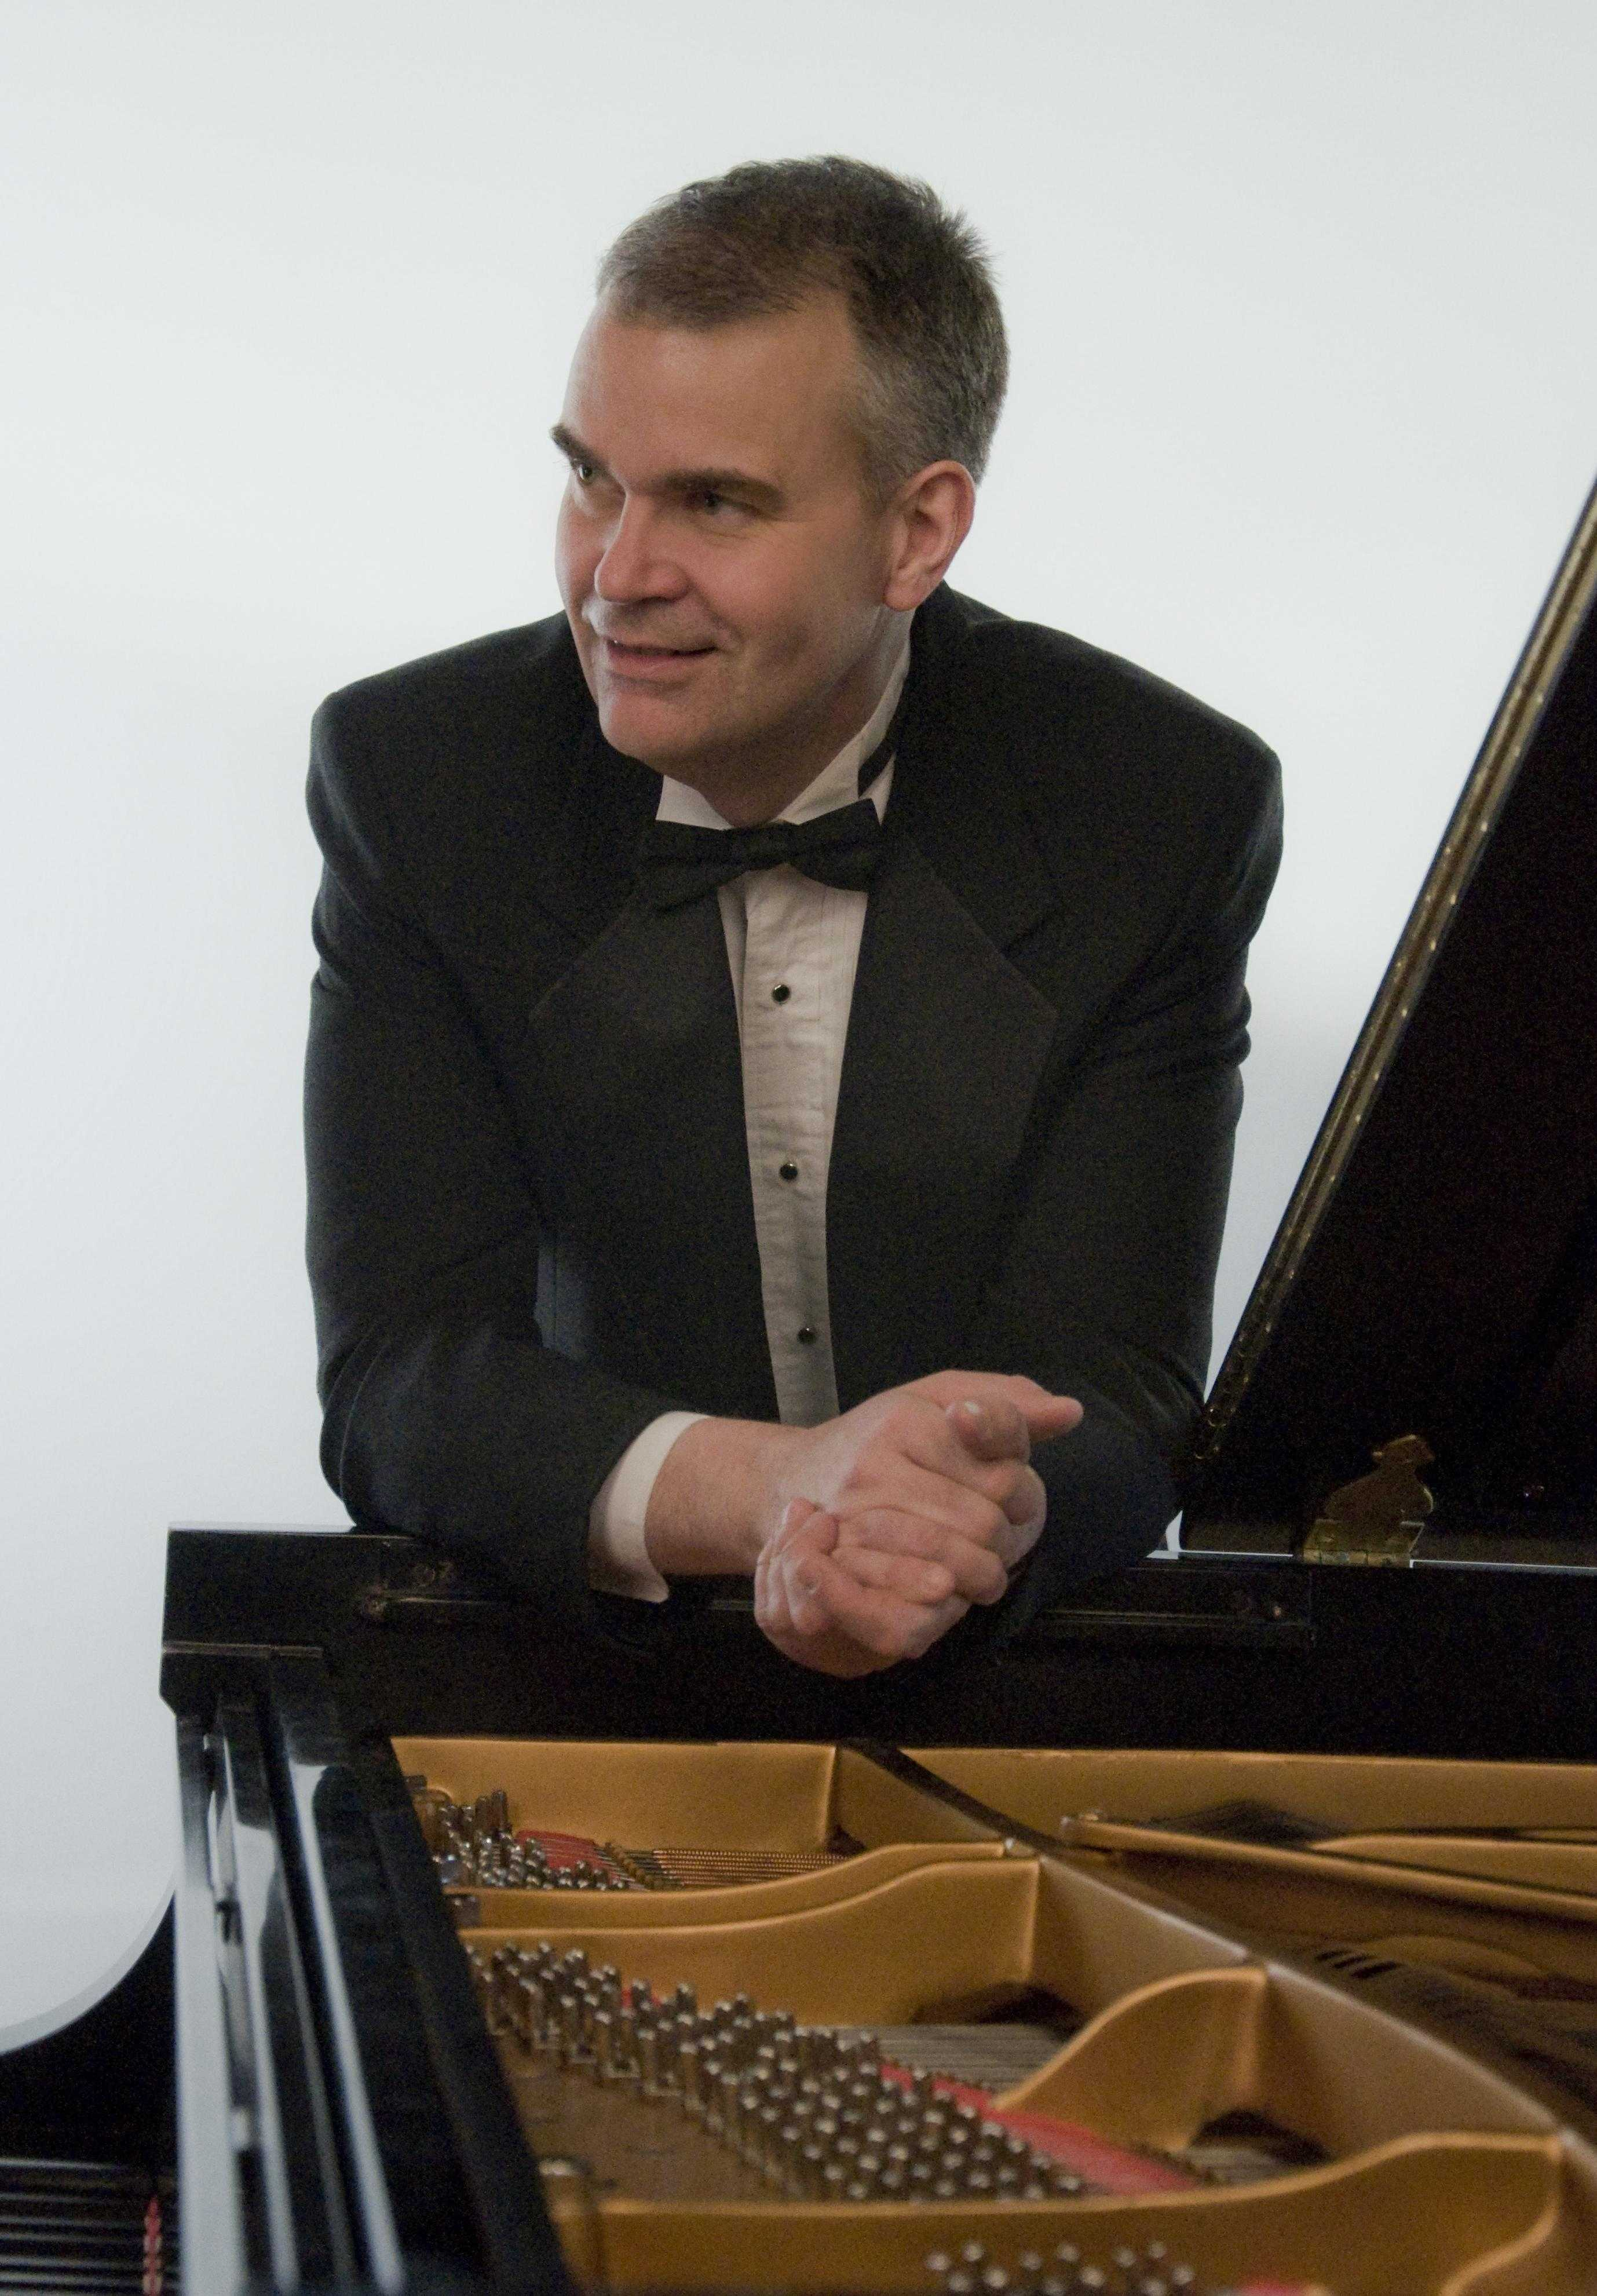 Robert Satterlee will be the first performer for the season.